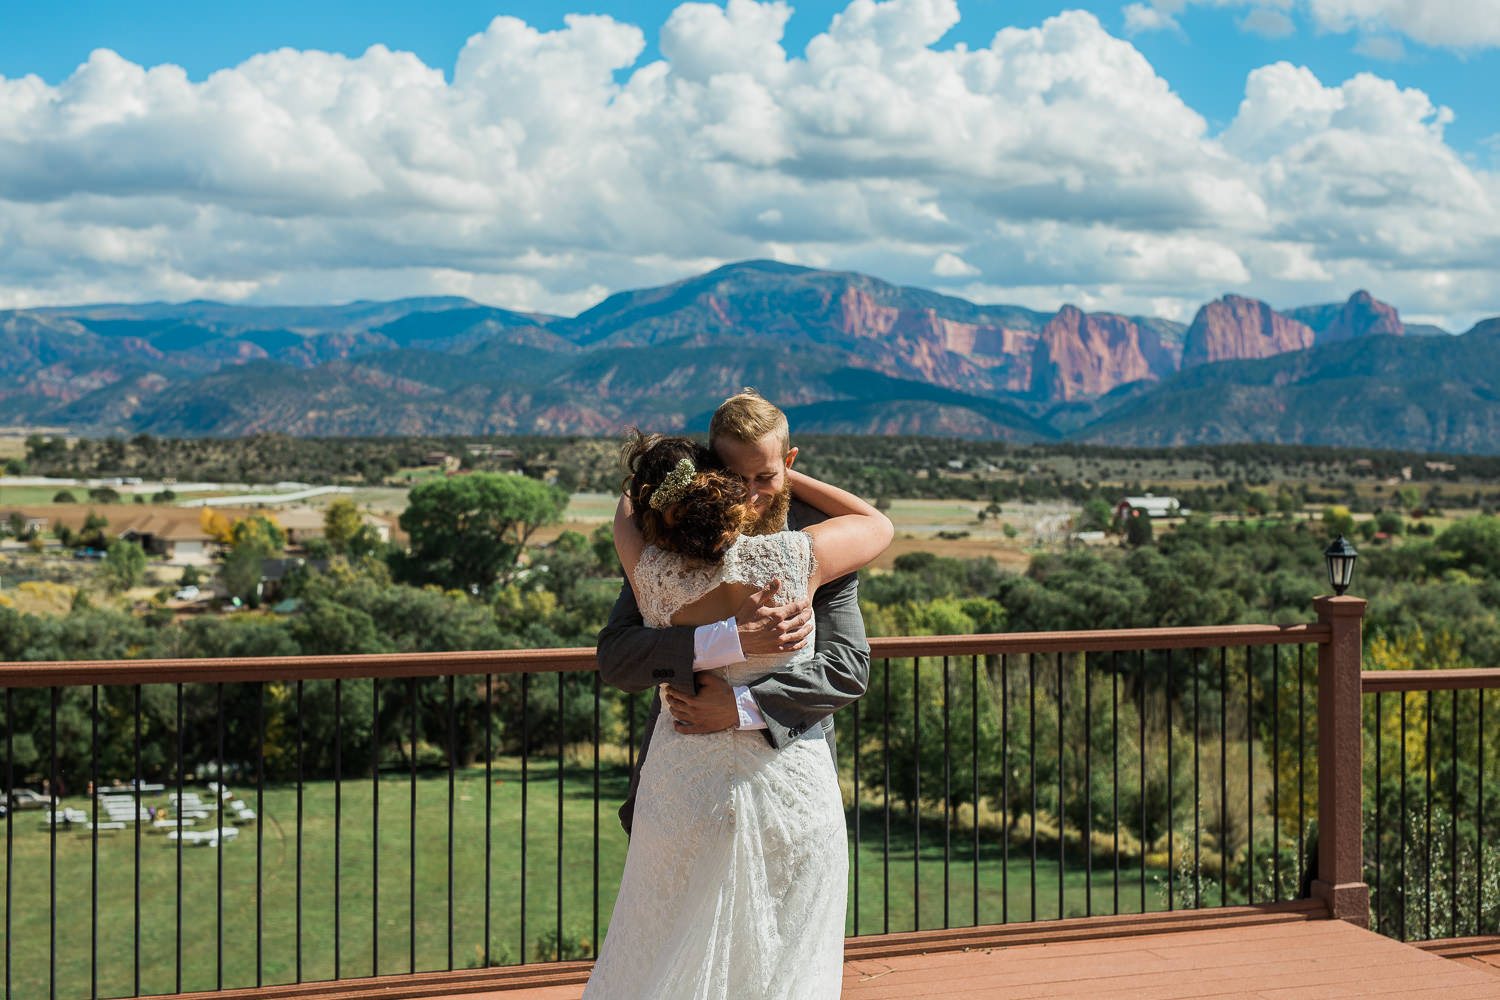 Kolob terrace zion national park wedding